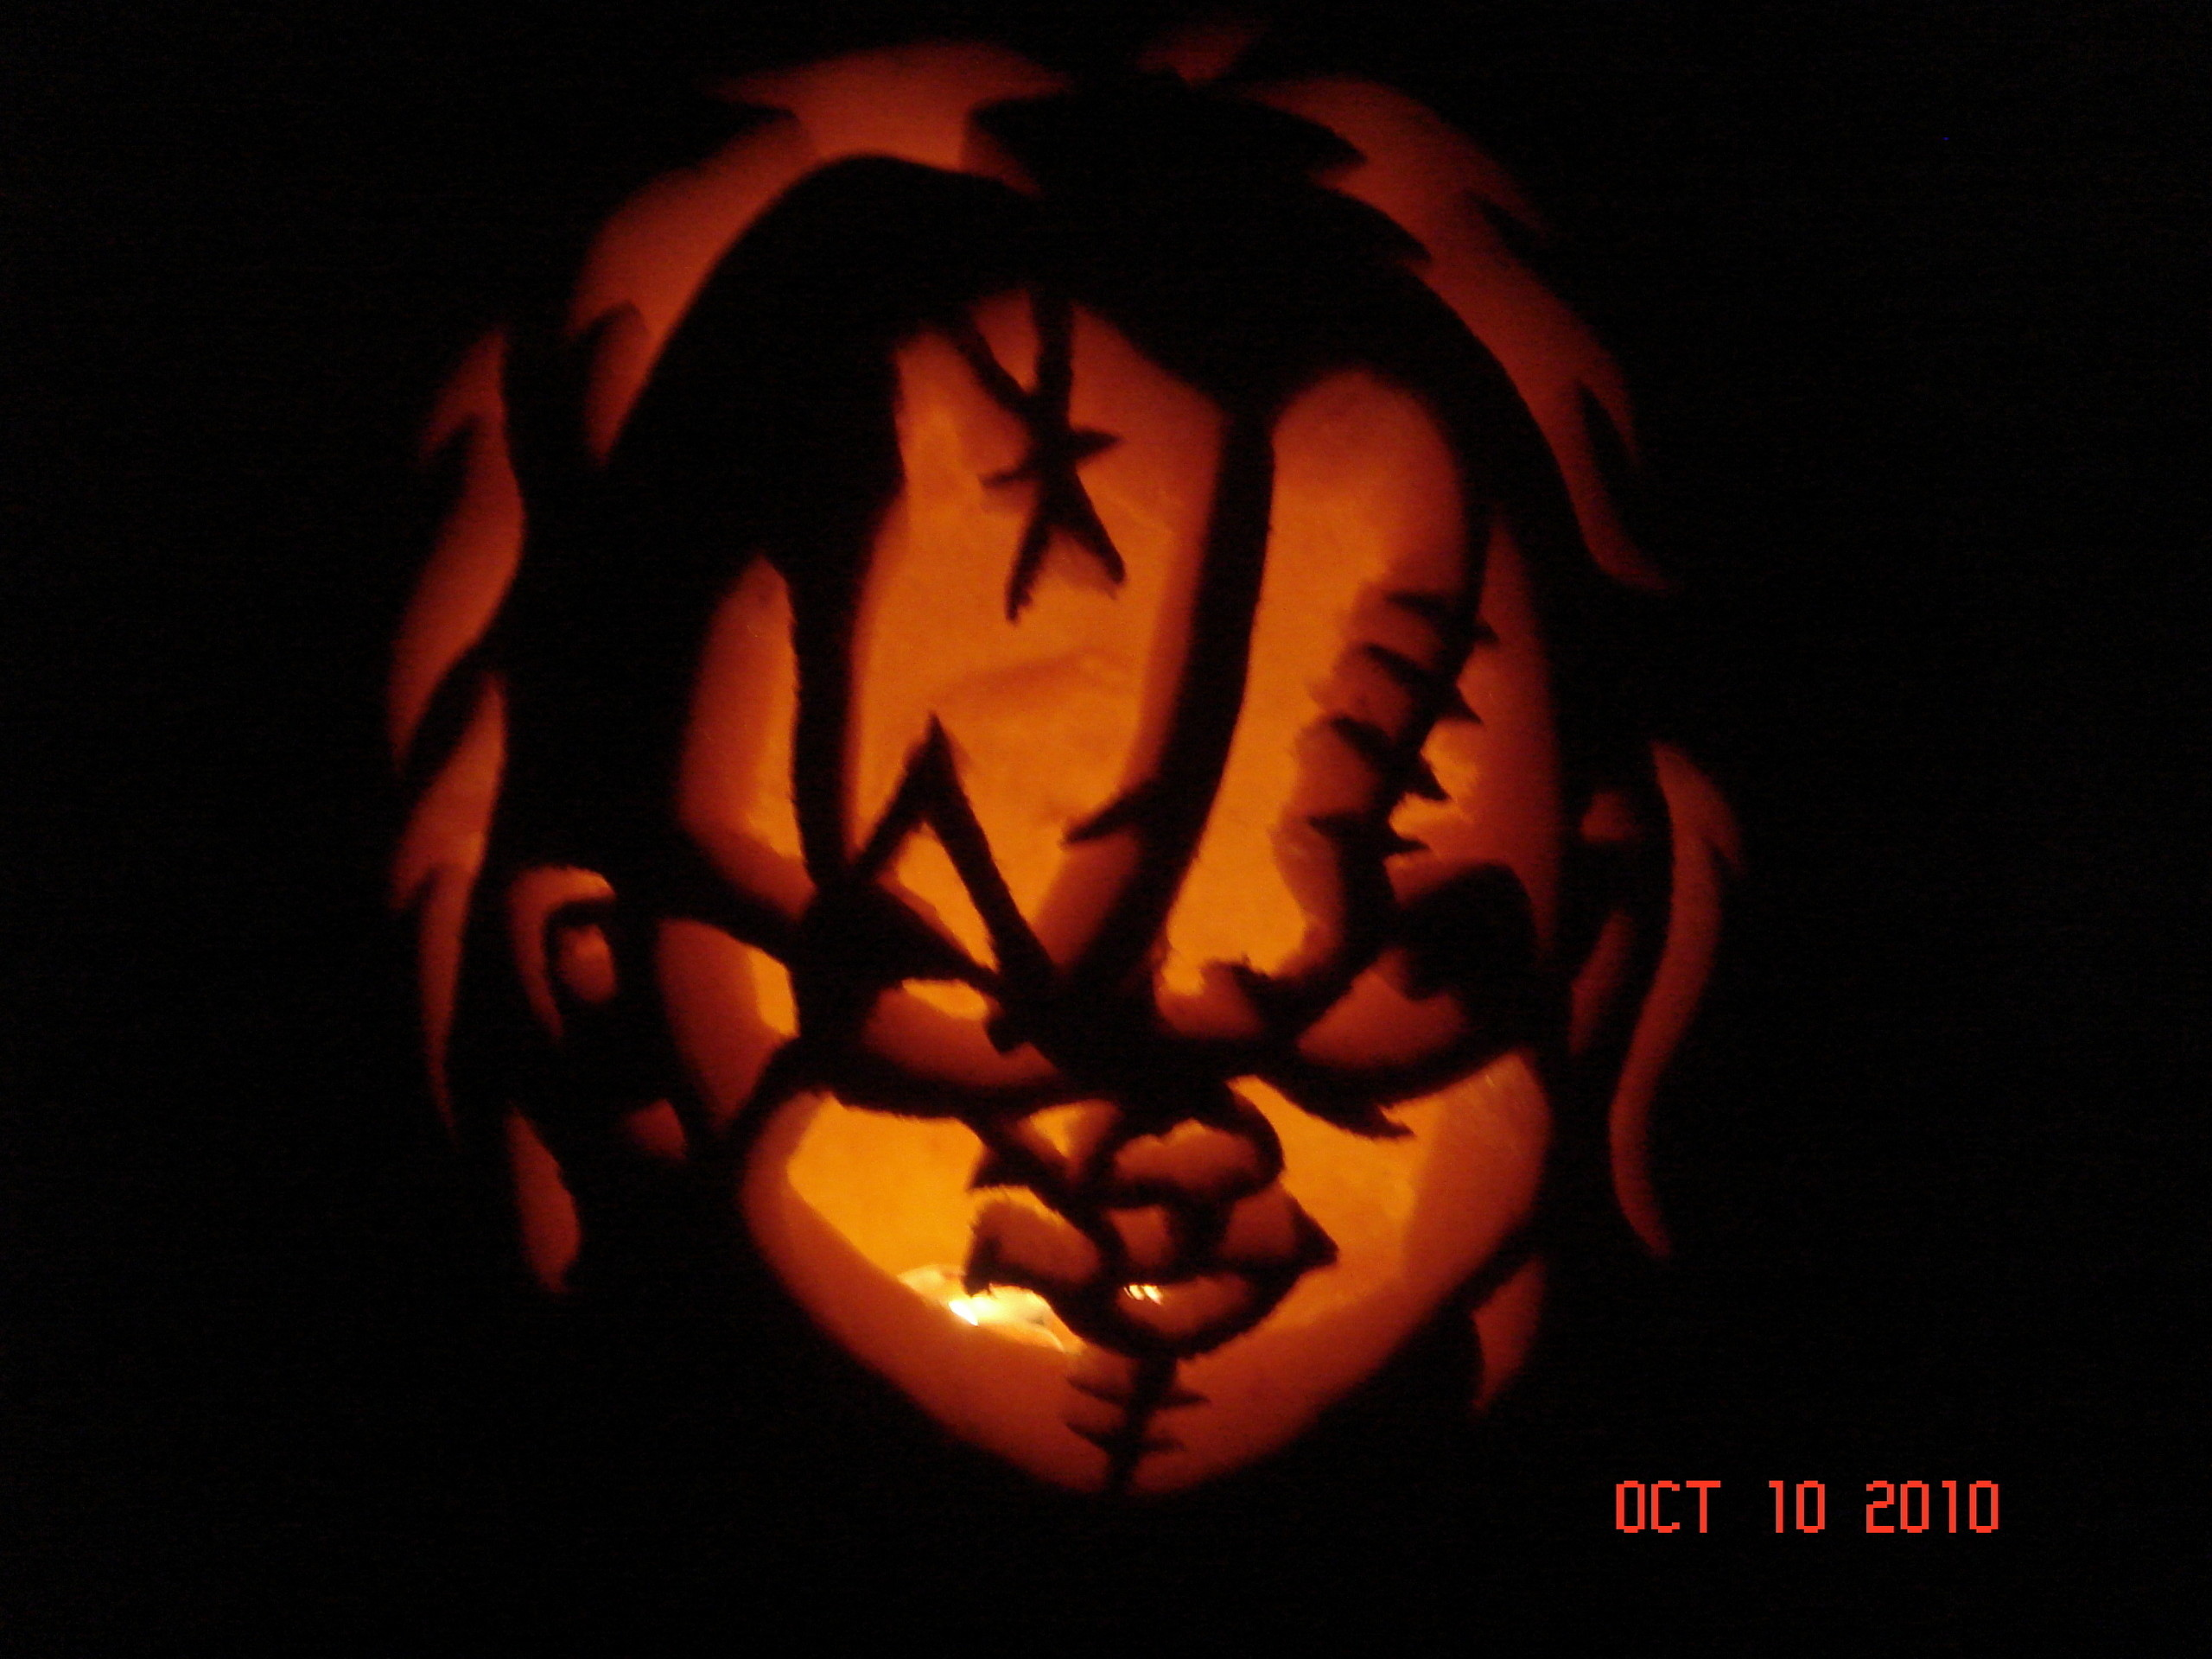 Horror Movie Killers images Chucky Pumpkin HD wallpaper and background  photos